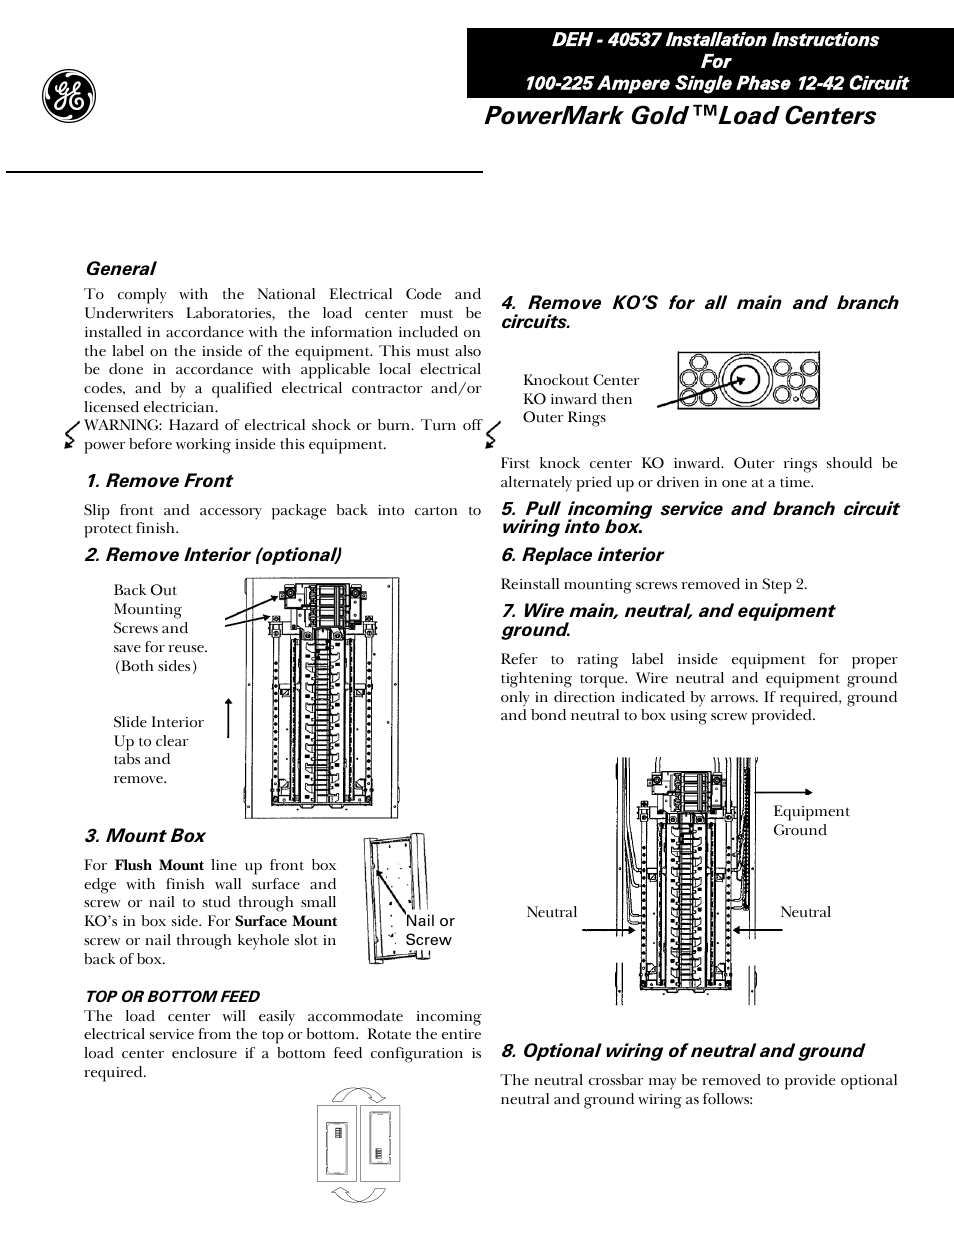 hight resolution of ge industrial solutions power mark gold load centers user manual 4 pages